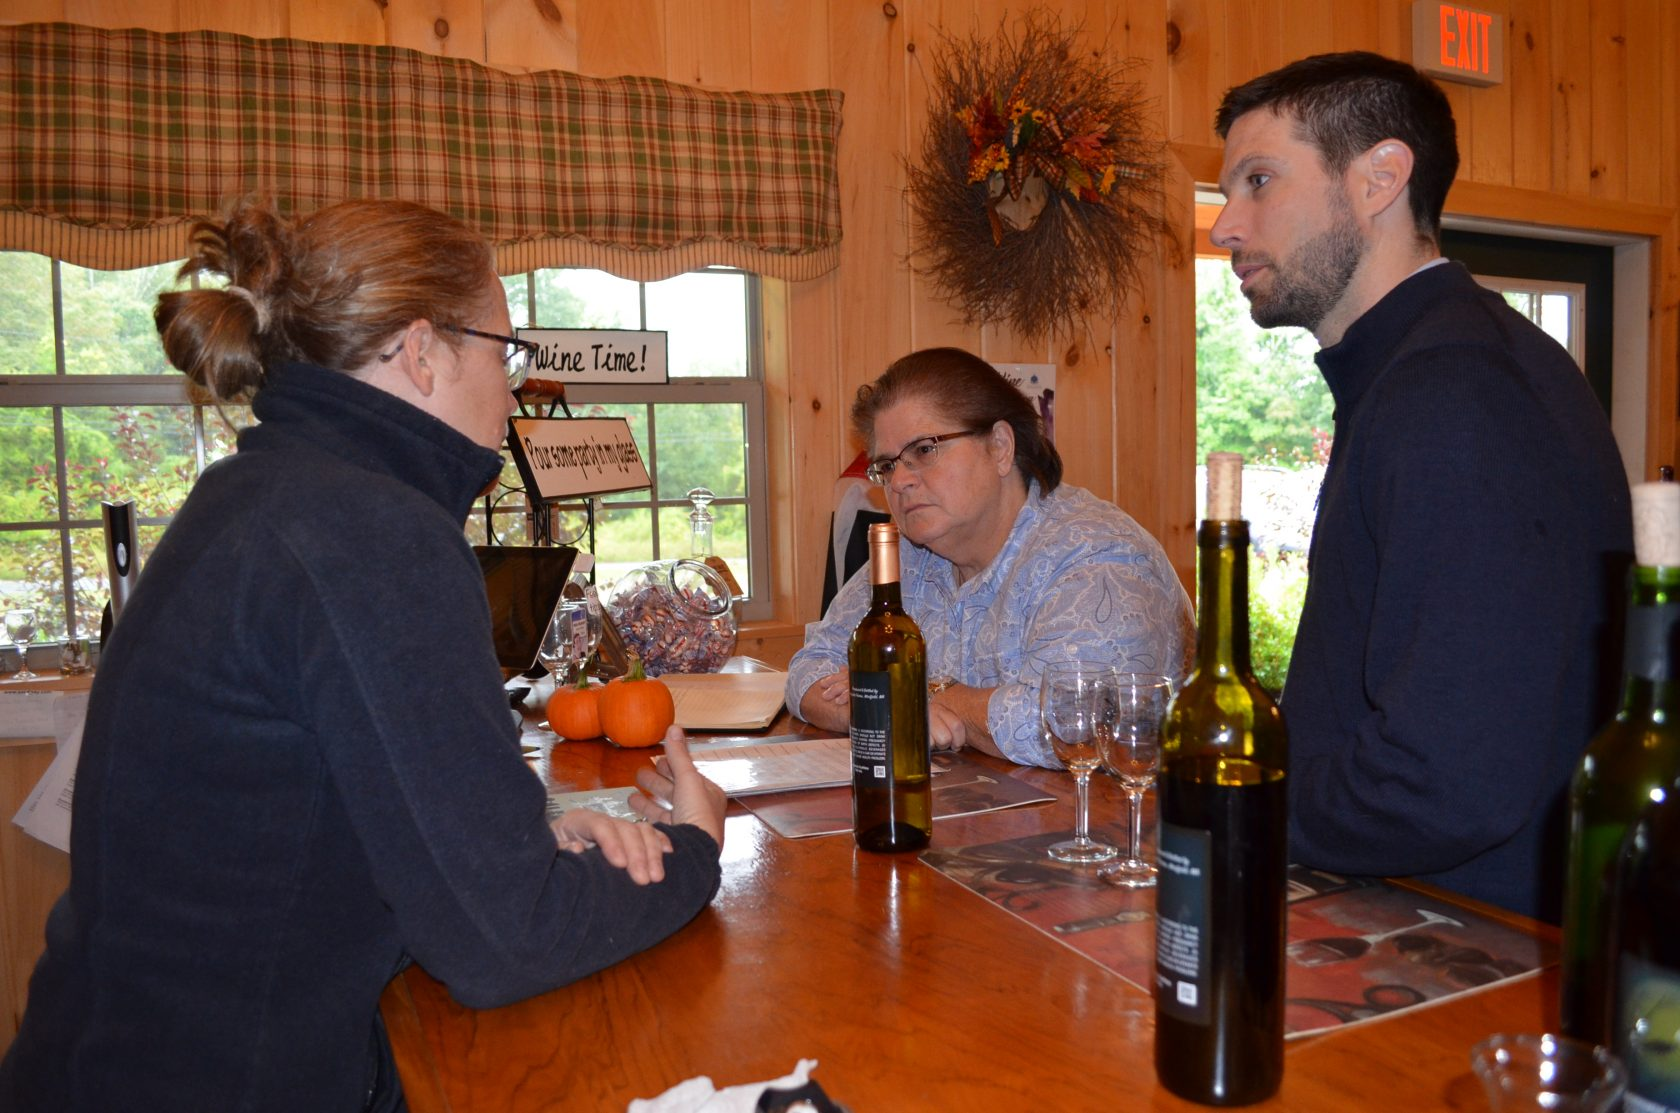 Wine tasting will support Athenaeum's renovation project